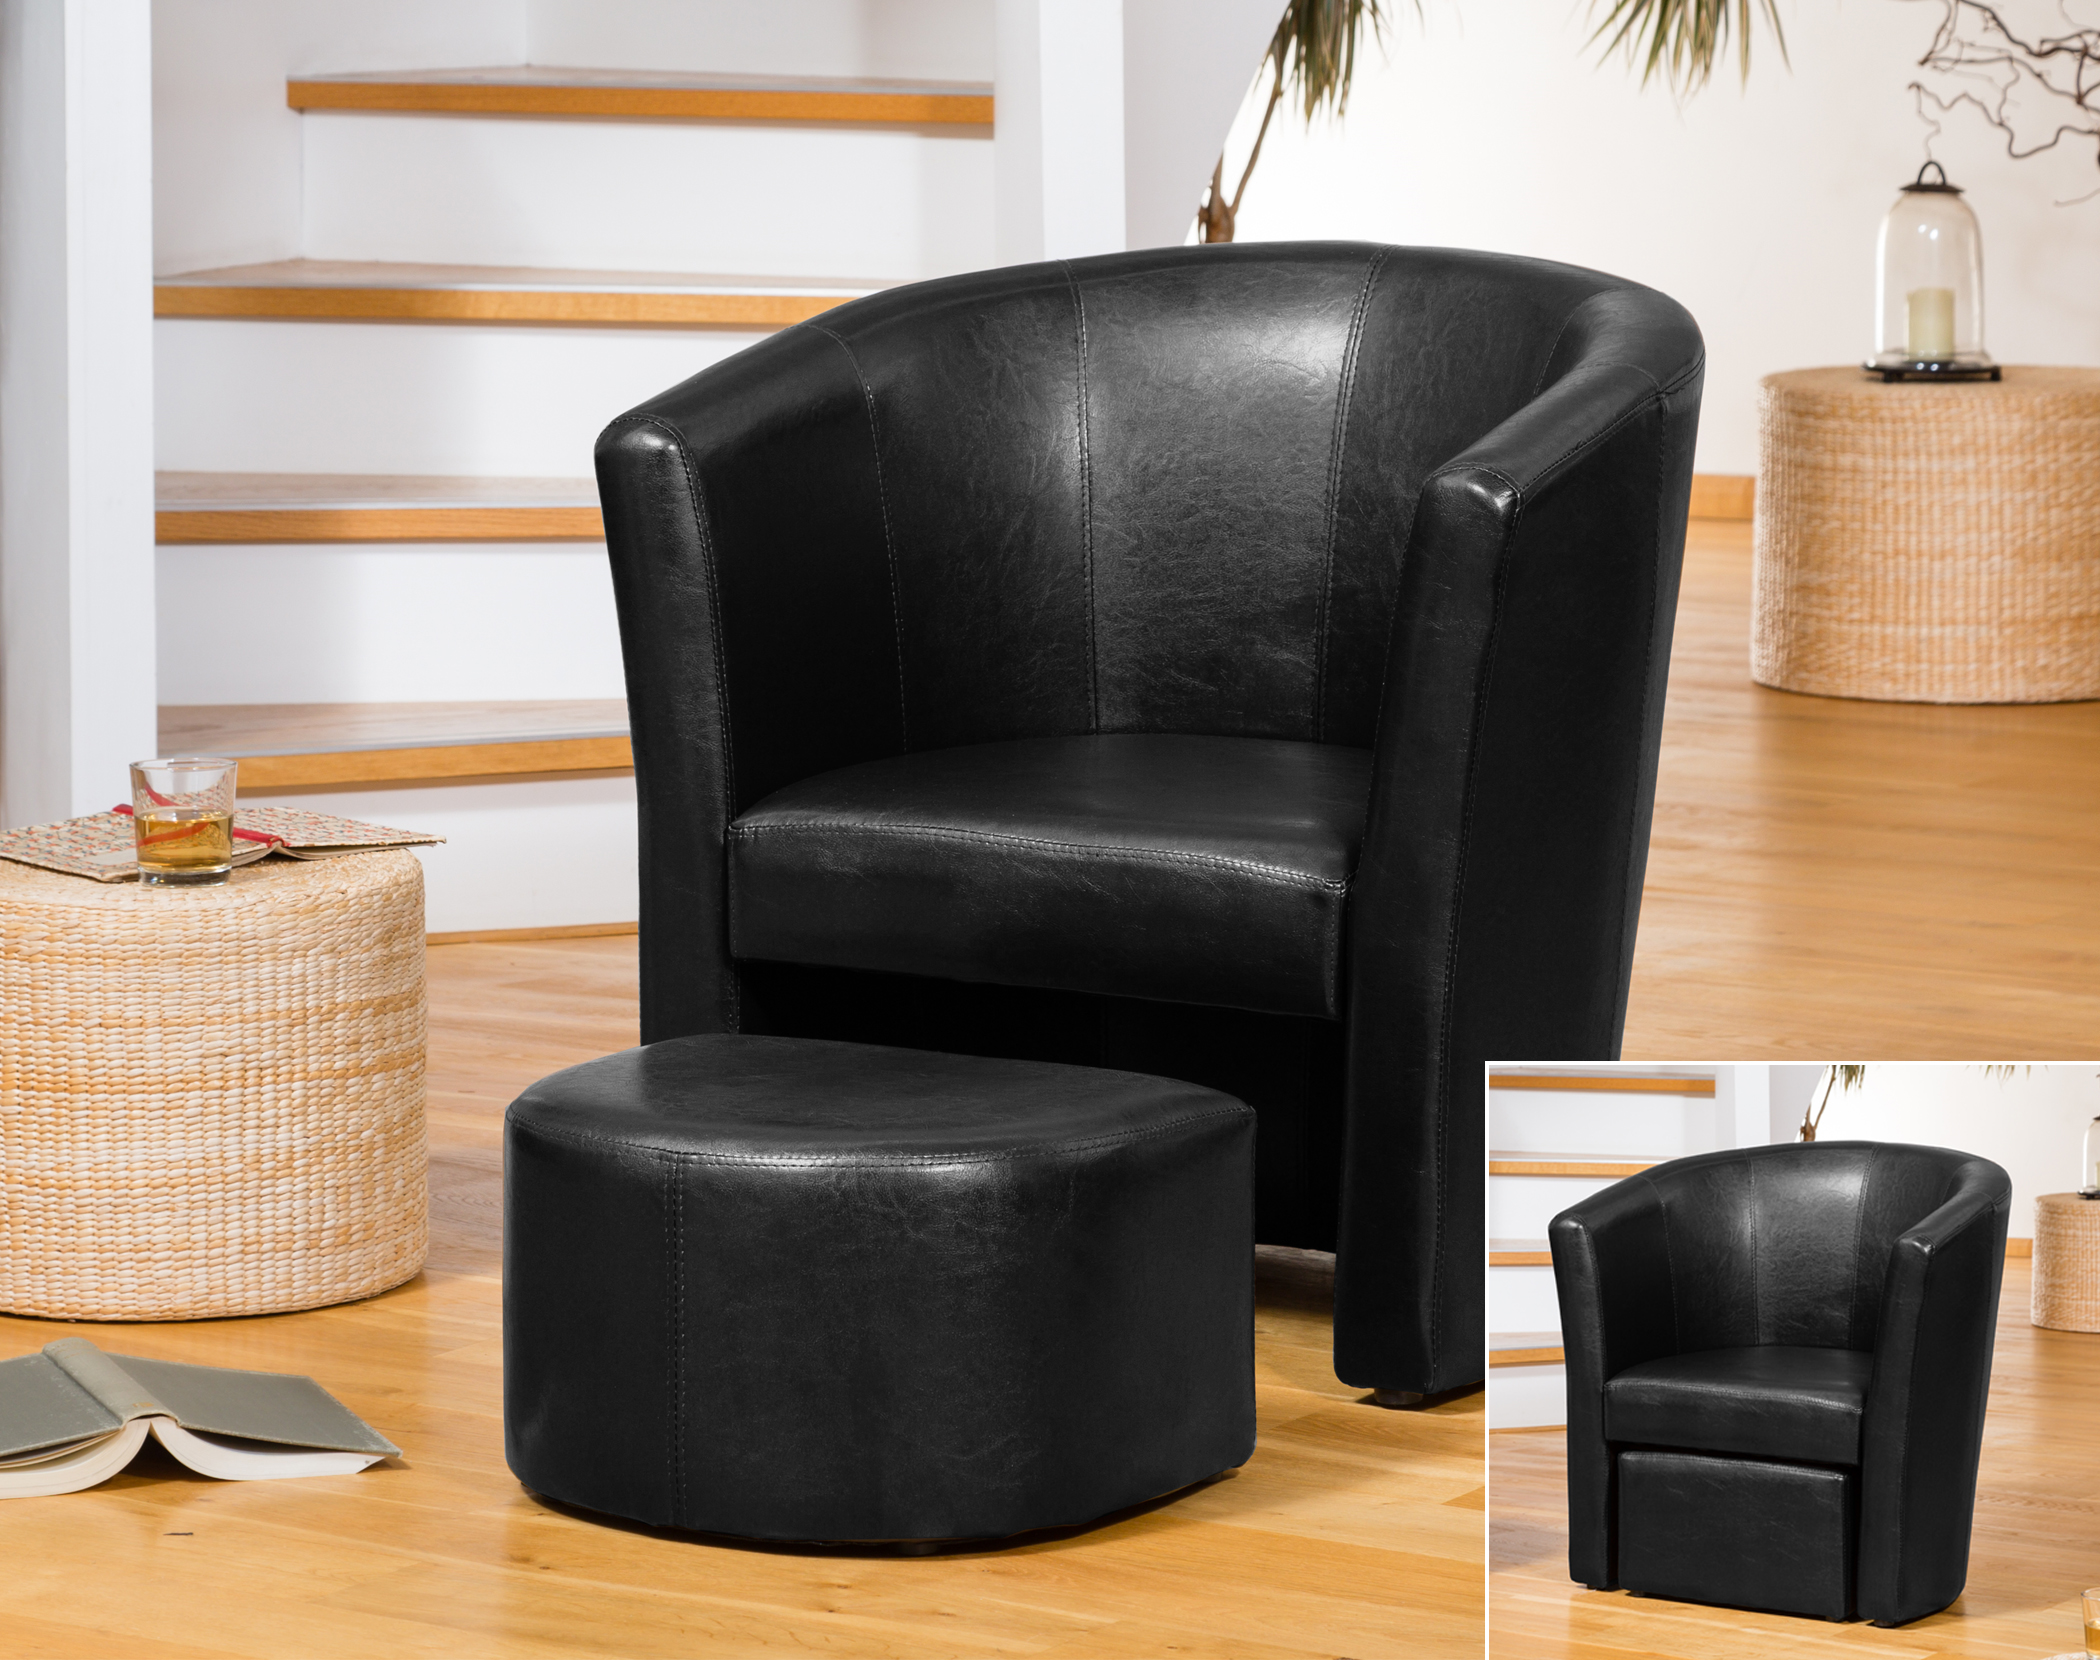 Berwick tub chair black